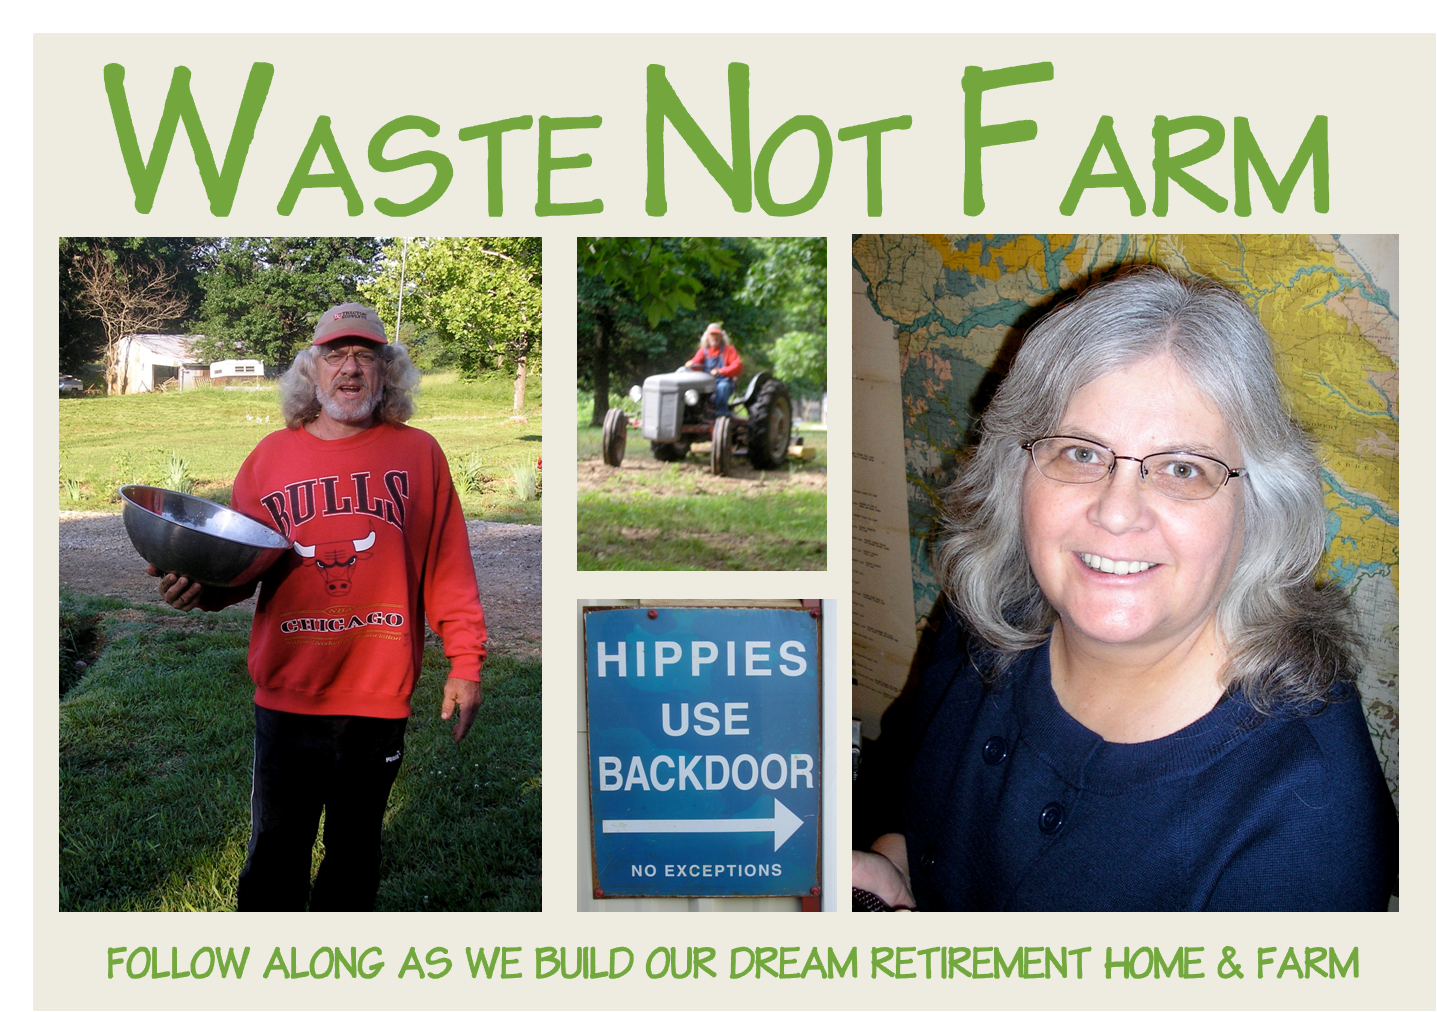 Waste Not Farm